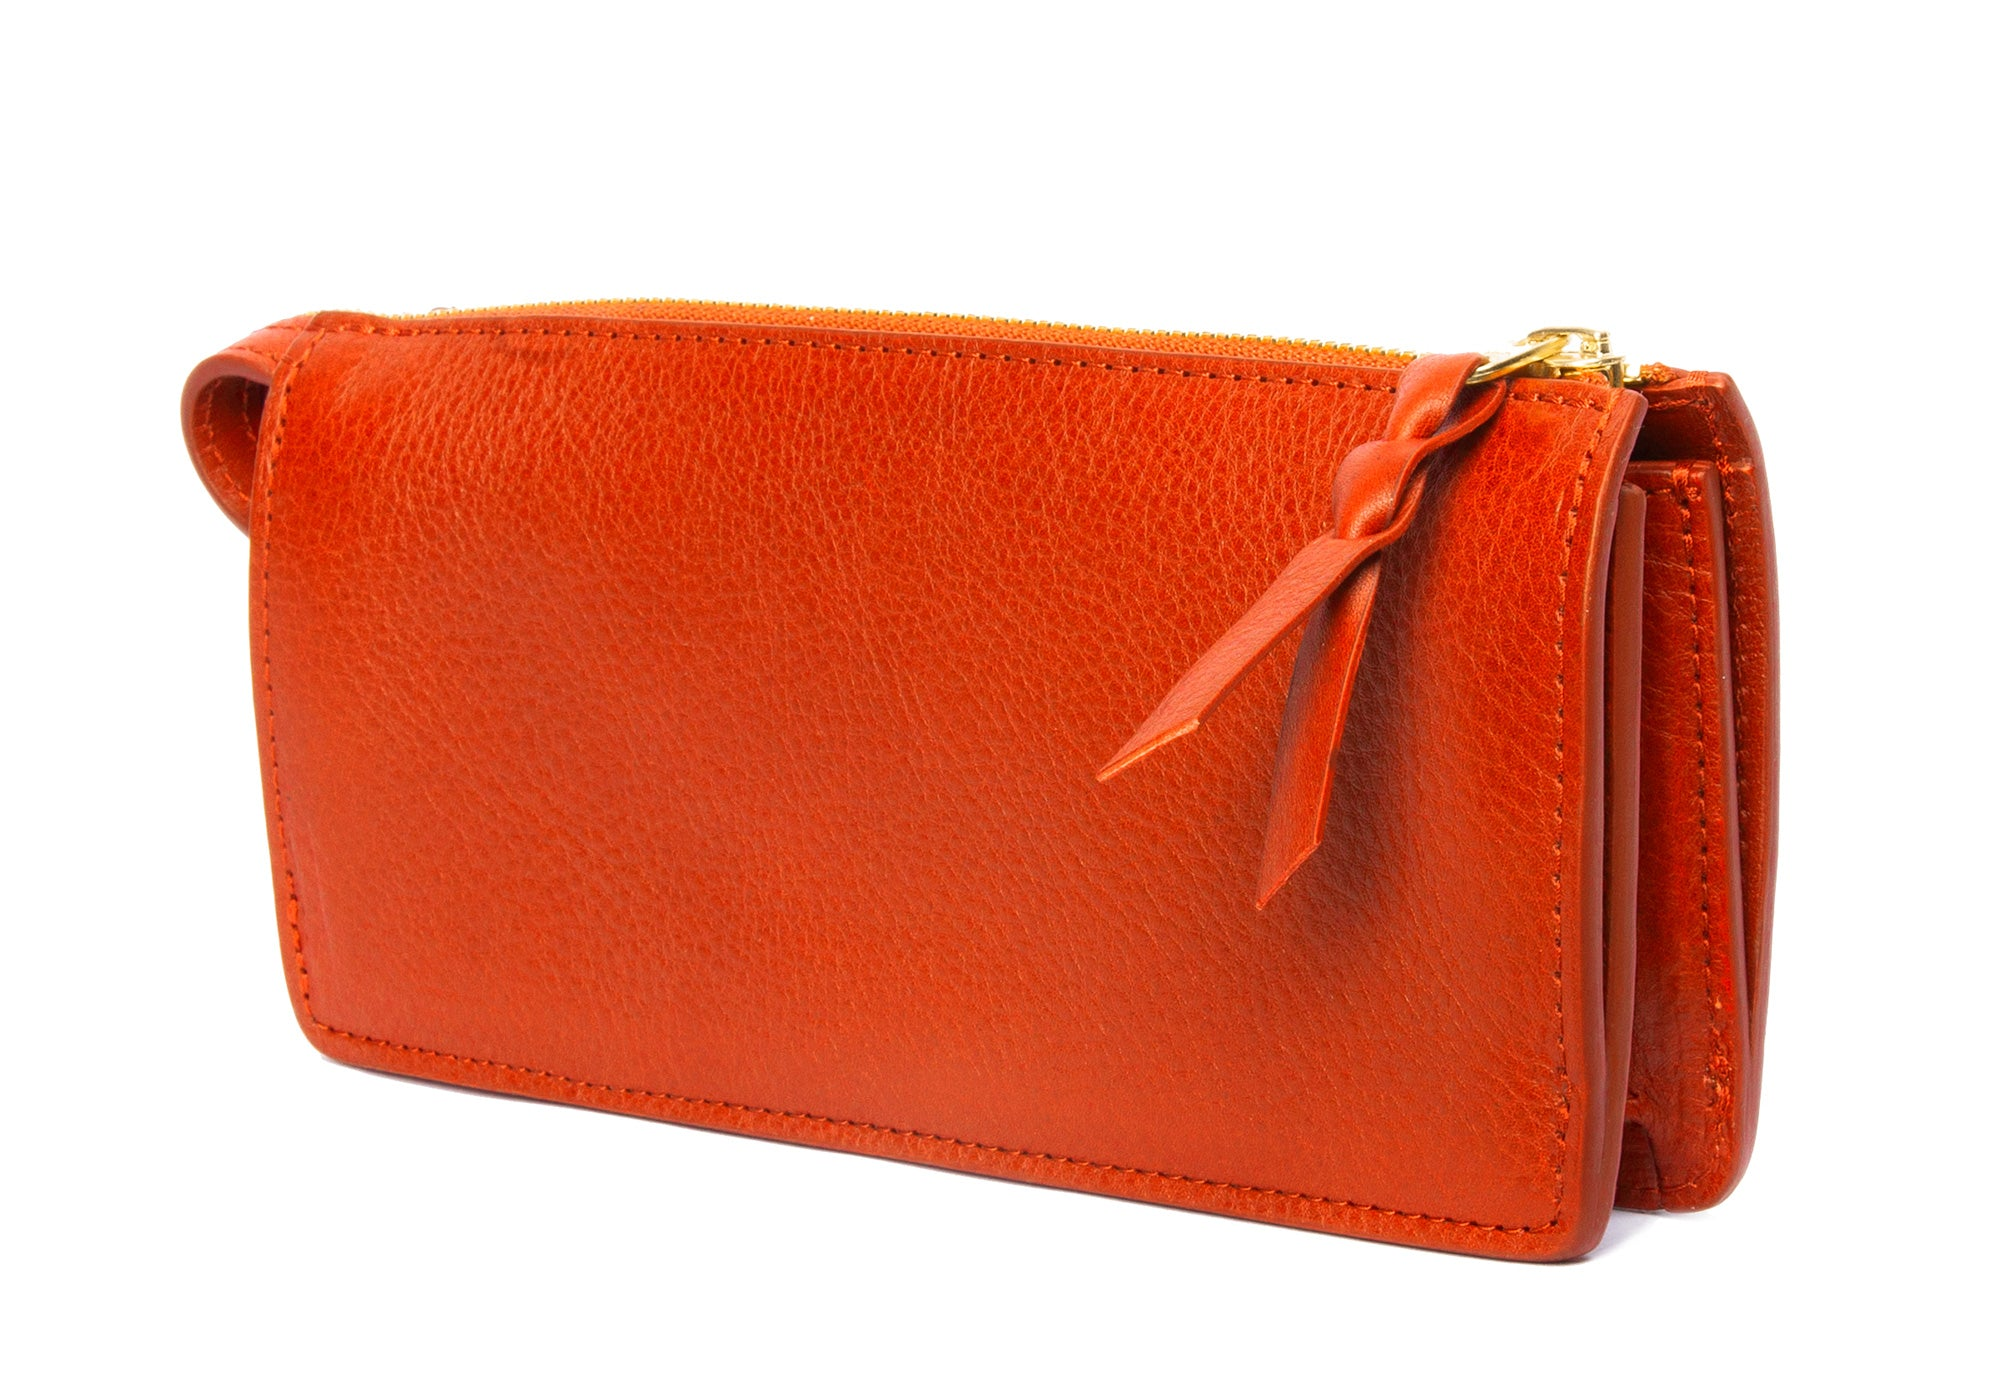 Women's Leather Wallet Orange